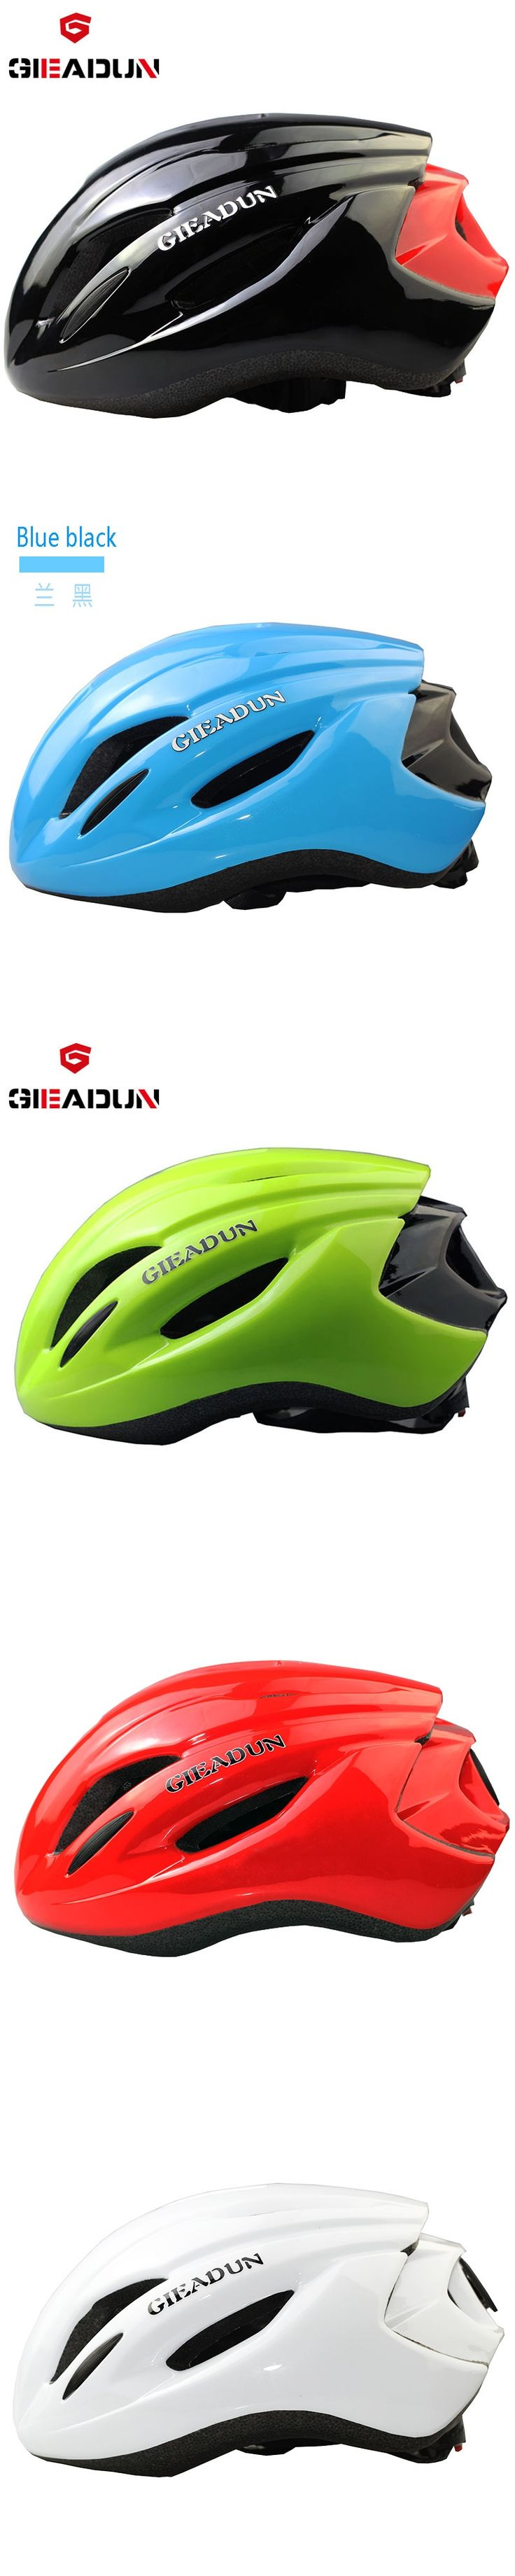 Capacete Special Offer Cascos Bicicleta Carretera Mtb Bike Cycling Helmet 2017 Town Integrally Molded Pc Eps Hull Fiets Bicycle